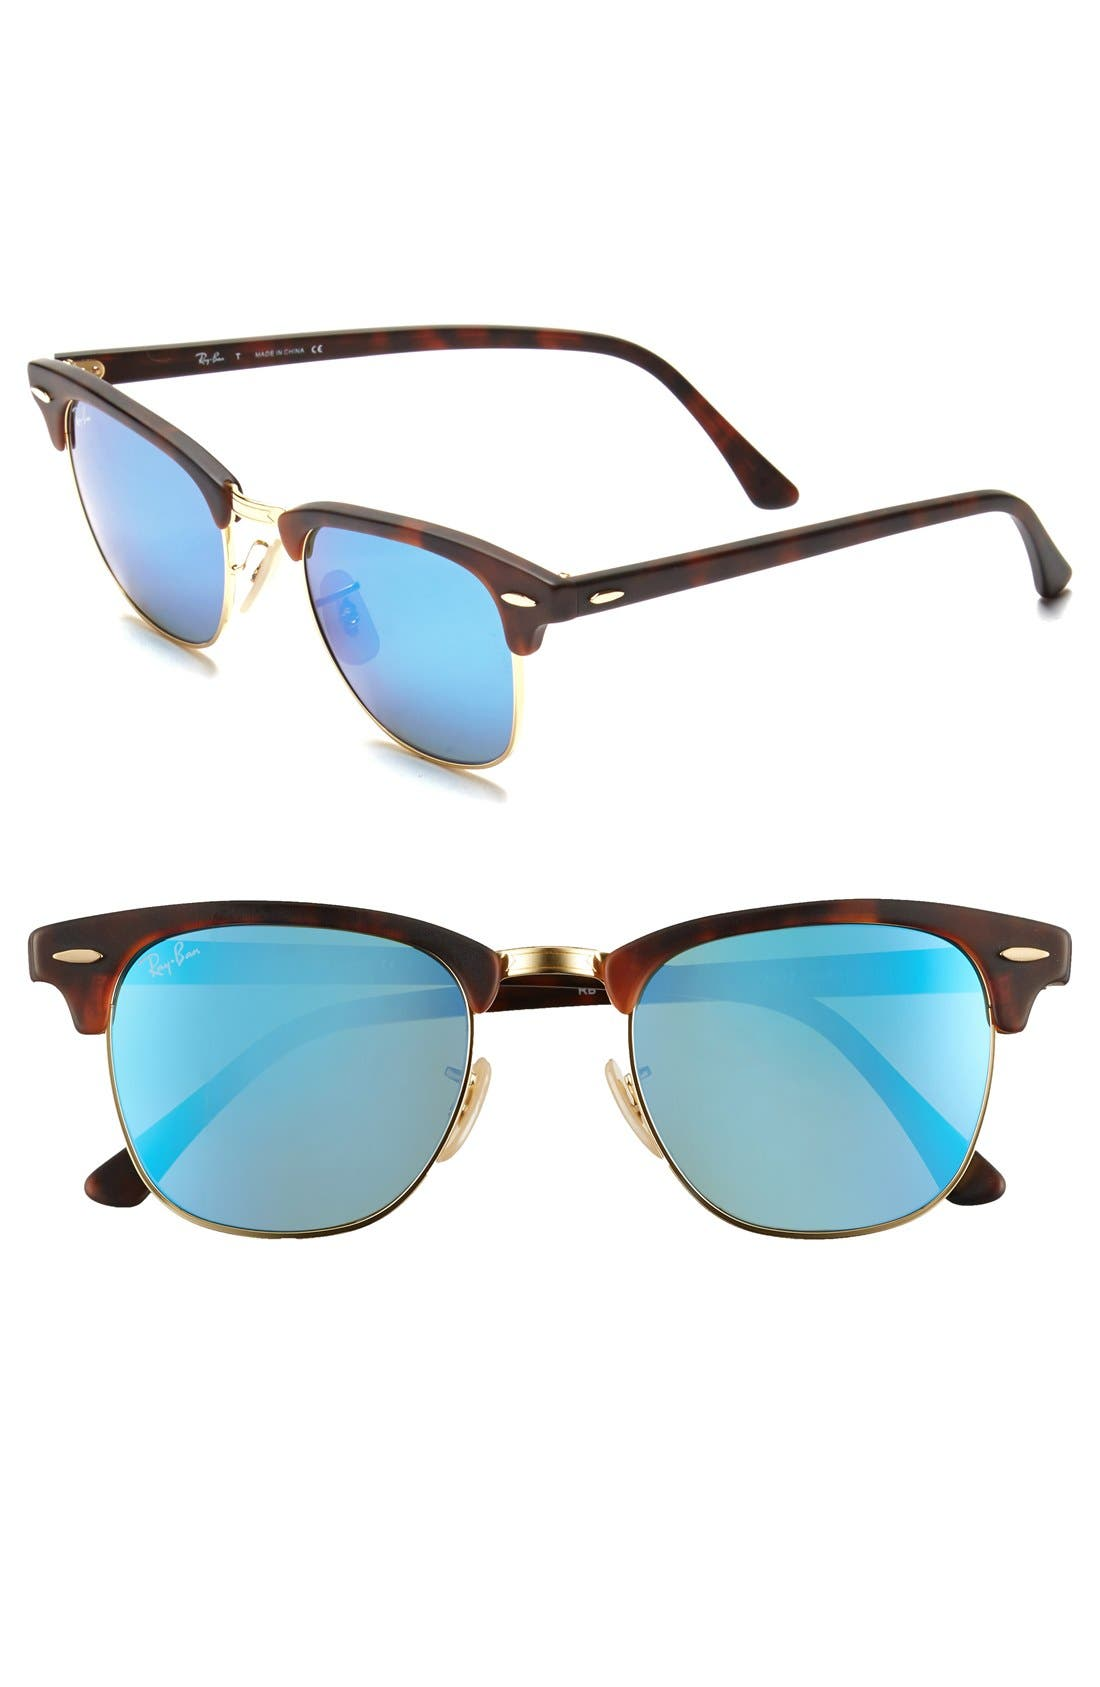 Flash Clubmaster 51mm Sunglasses,                         Main,                         color, Tortoise/ Blue Mirror